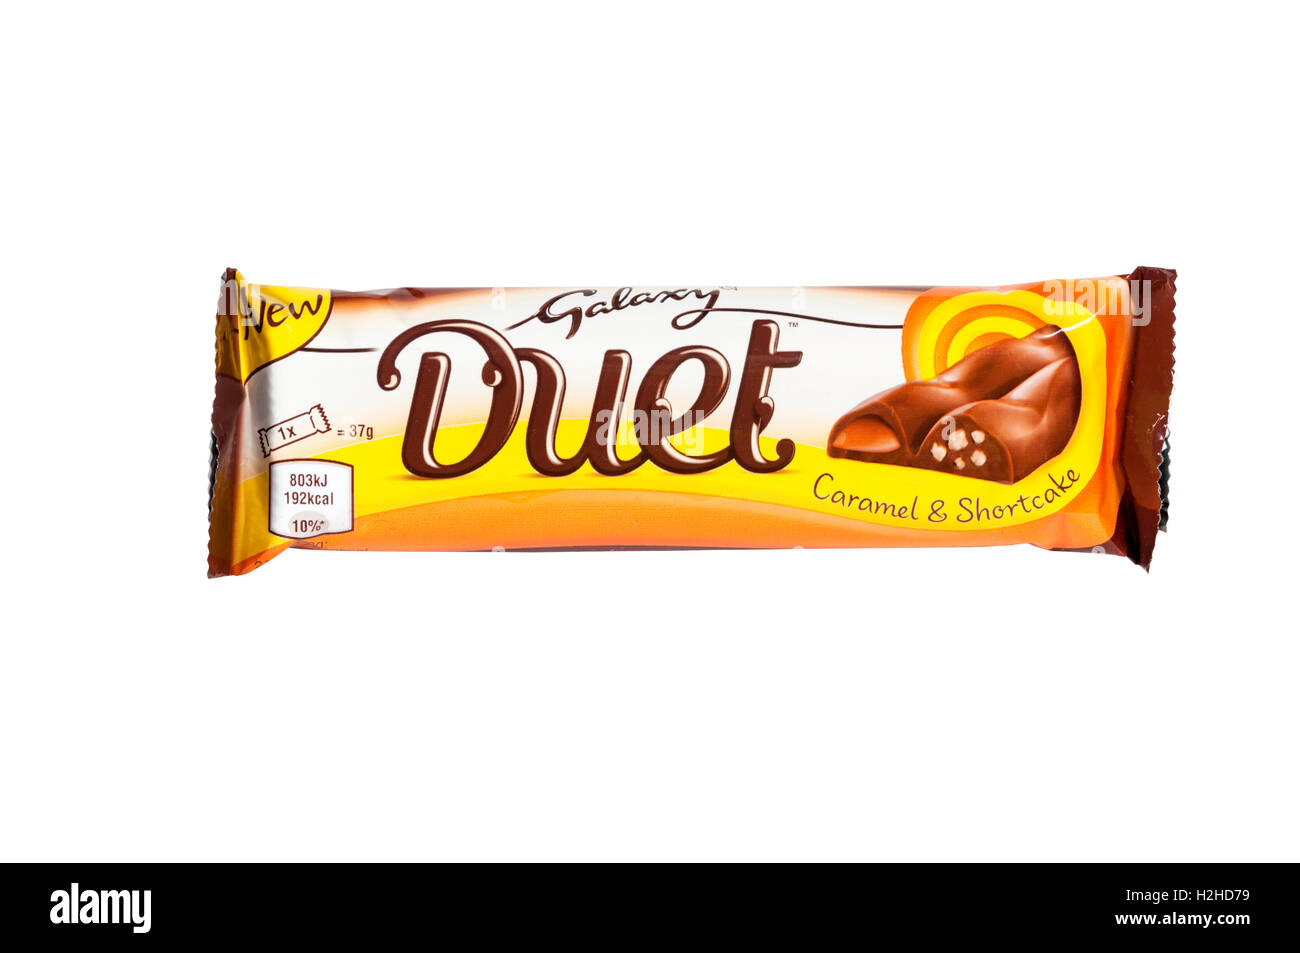 A Galaxy Duet chocolate bar made by Mars incorporated. - Stock Image